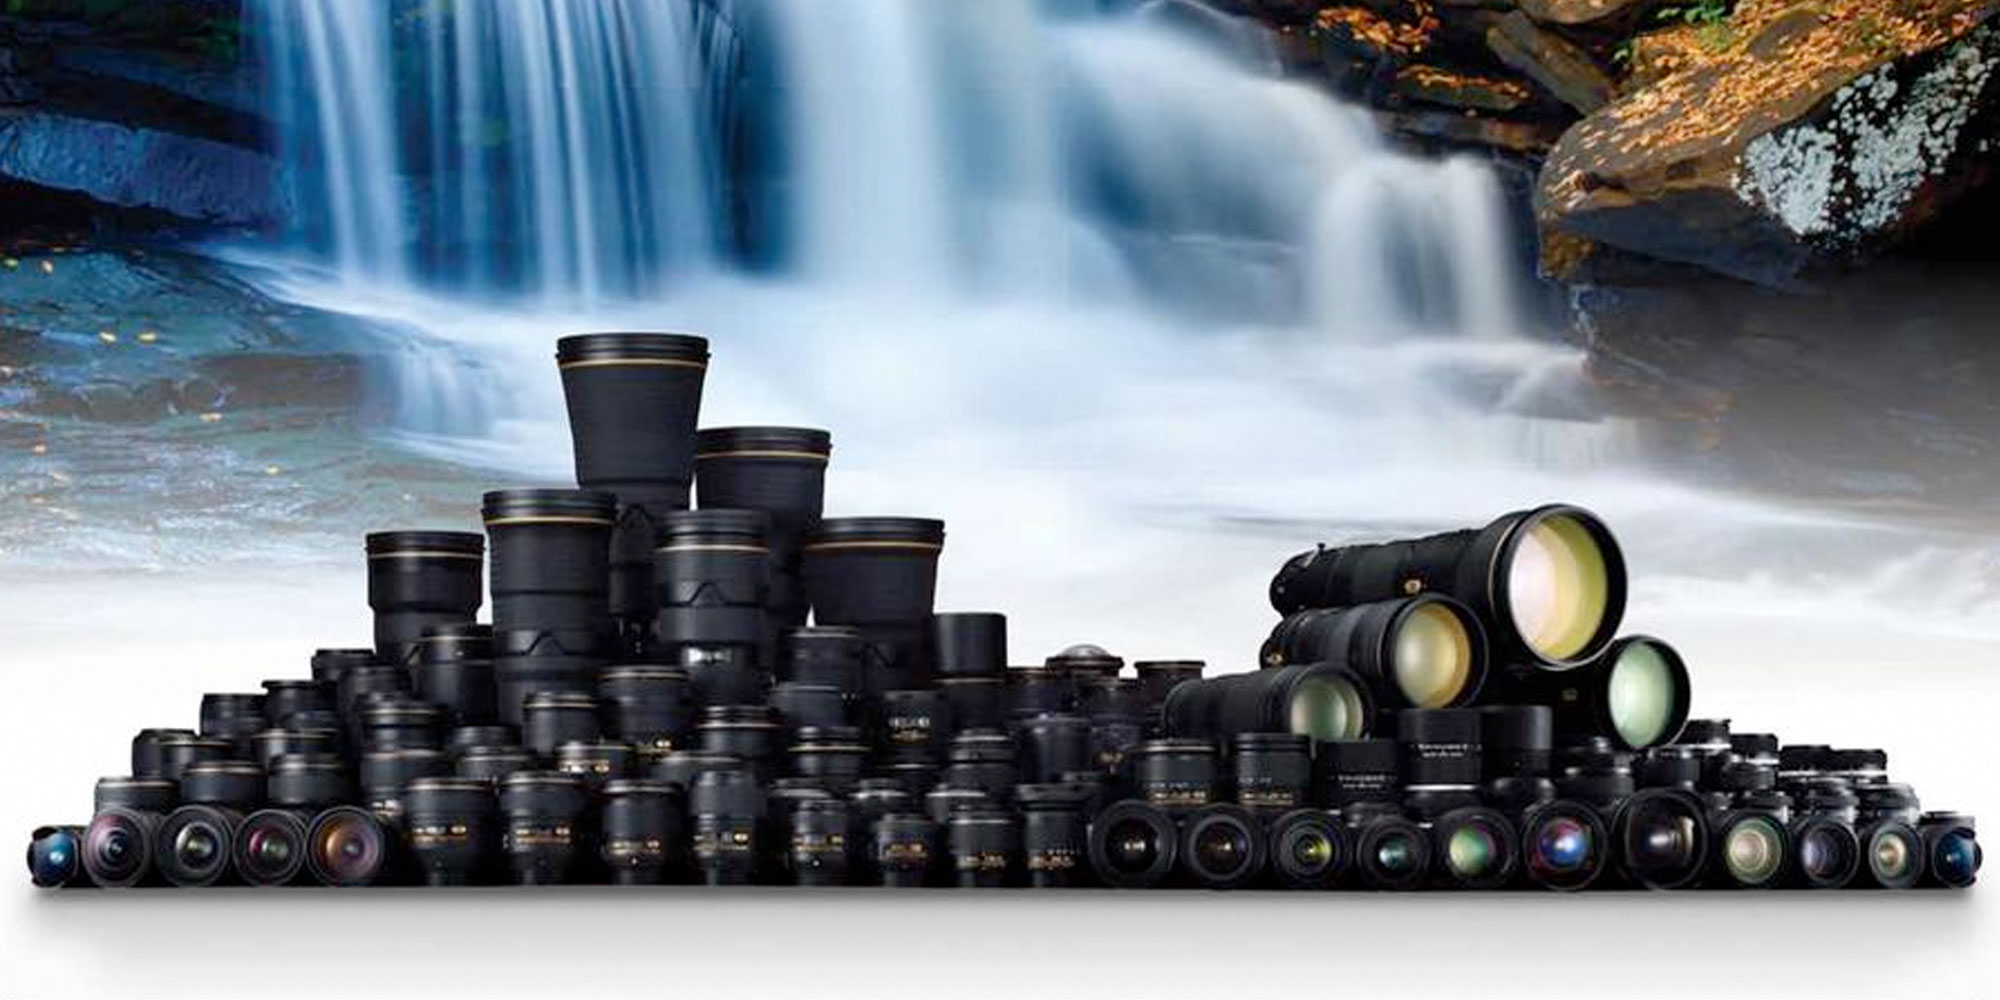 Nikon Black Friday Ad: Discounted DSLR bundles, lens sales, free shipping, more